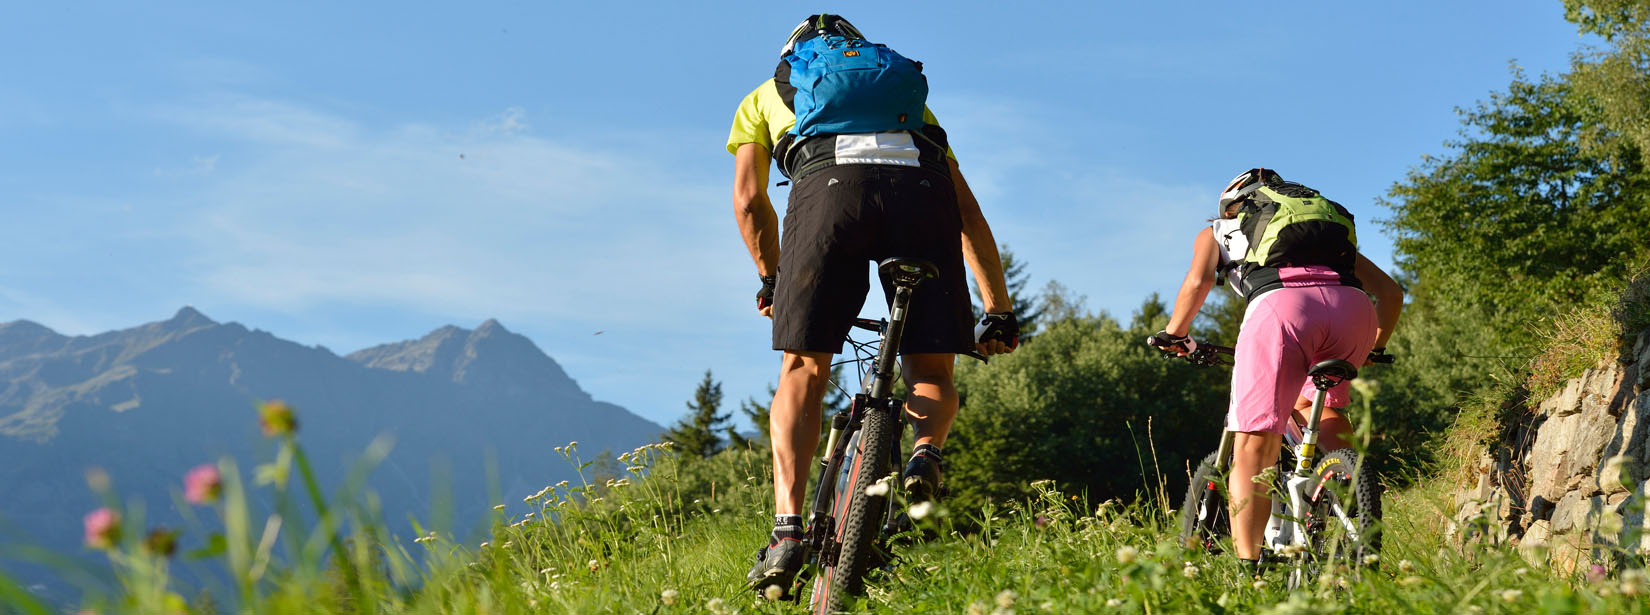 Mountainbiken in Südtirol